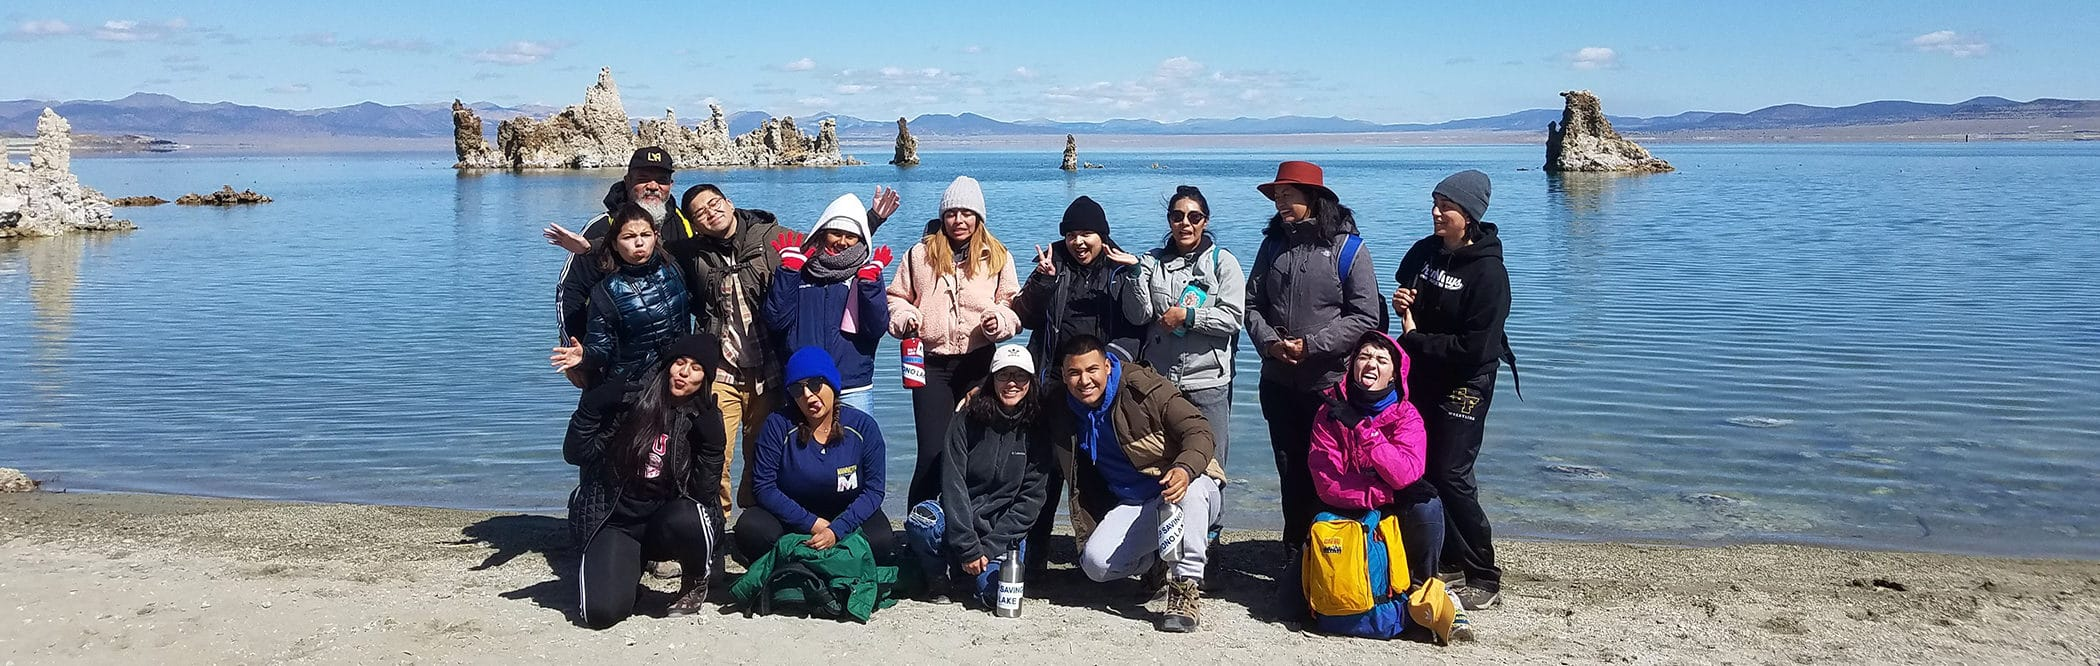 A group of students posing for a group photograph at the shoreline of Mono Lake with the blue lake in the background and tufa towers sticking up from the water and some of the students are making silly faces and gestures.